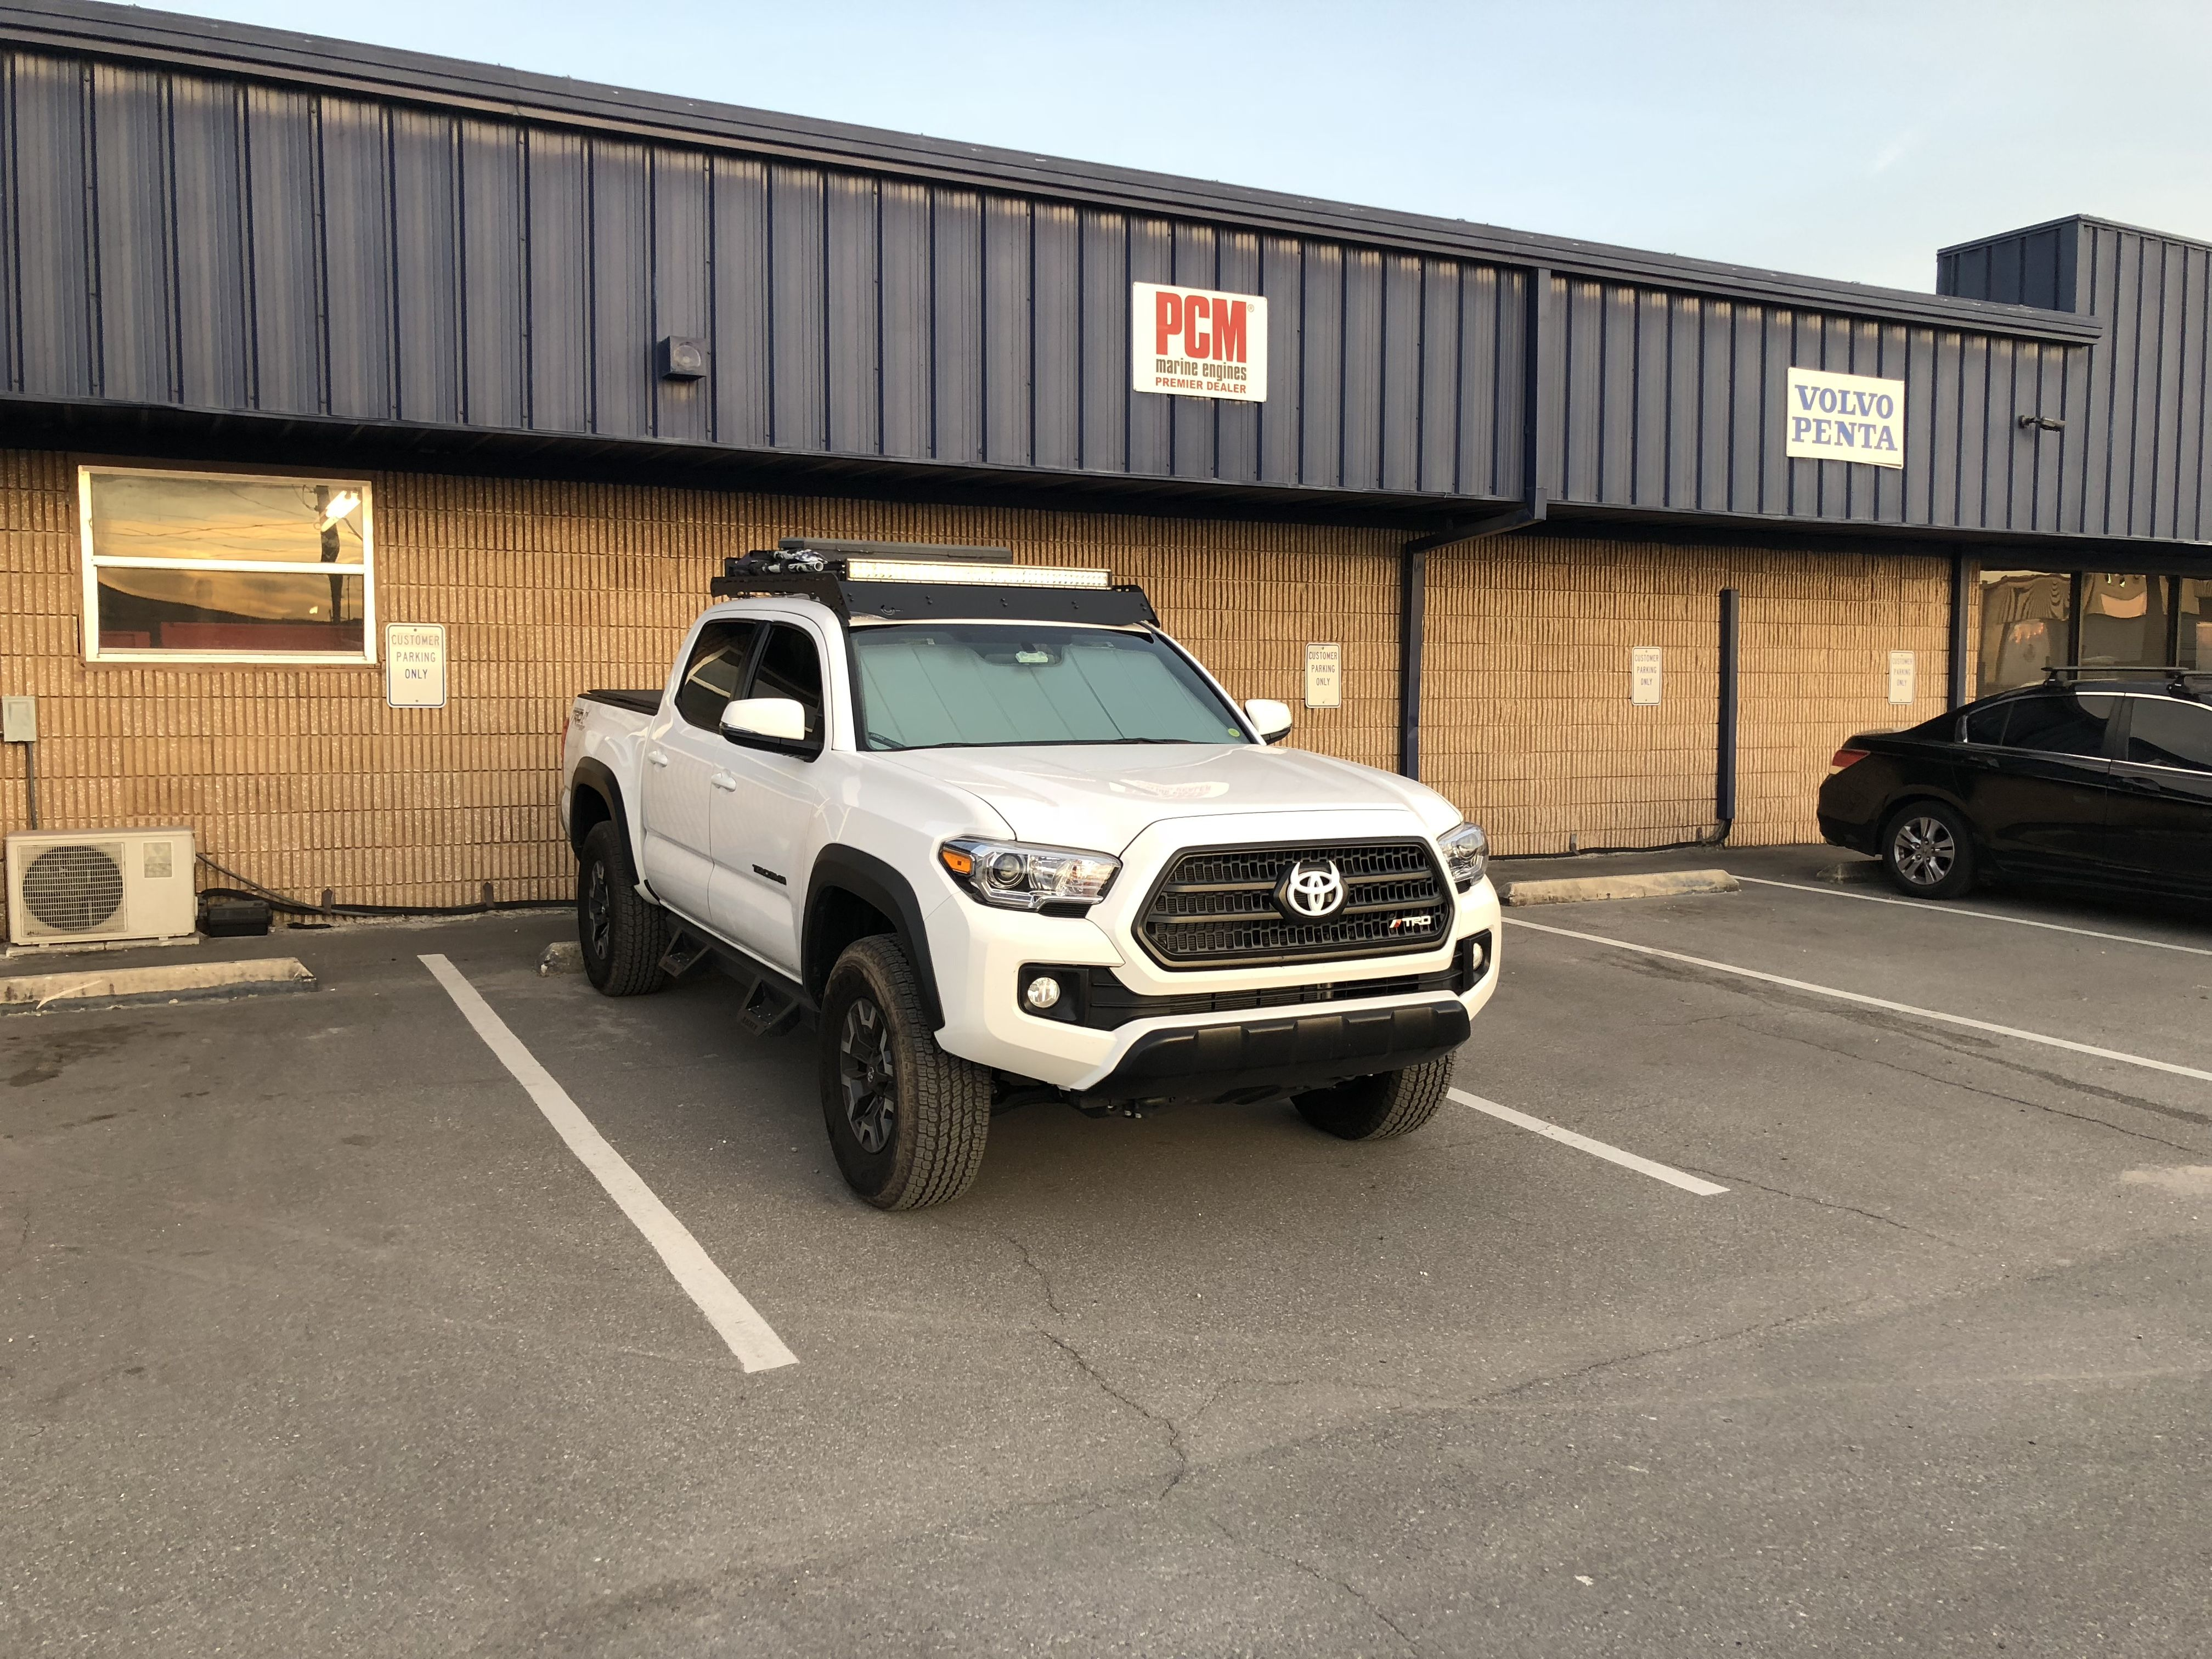 2005 Toyota Tacoma Roof Rack - Lovequilts